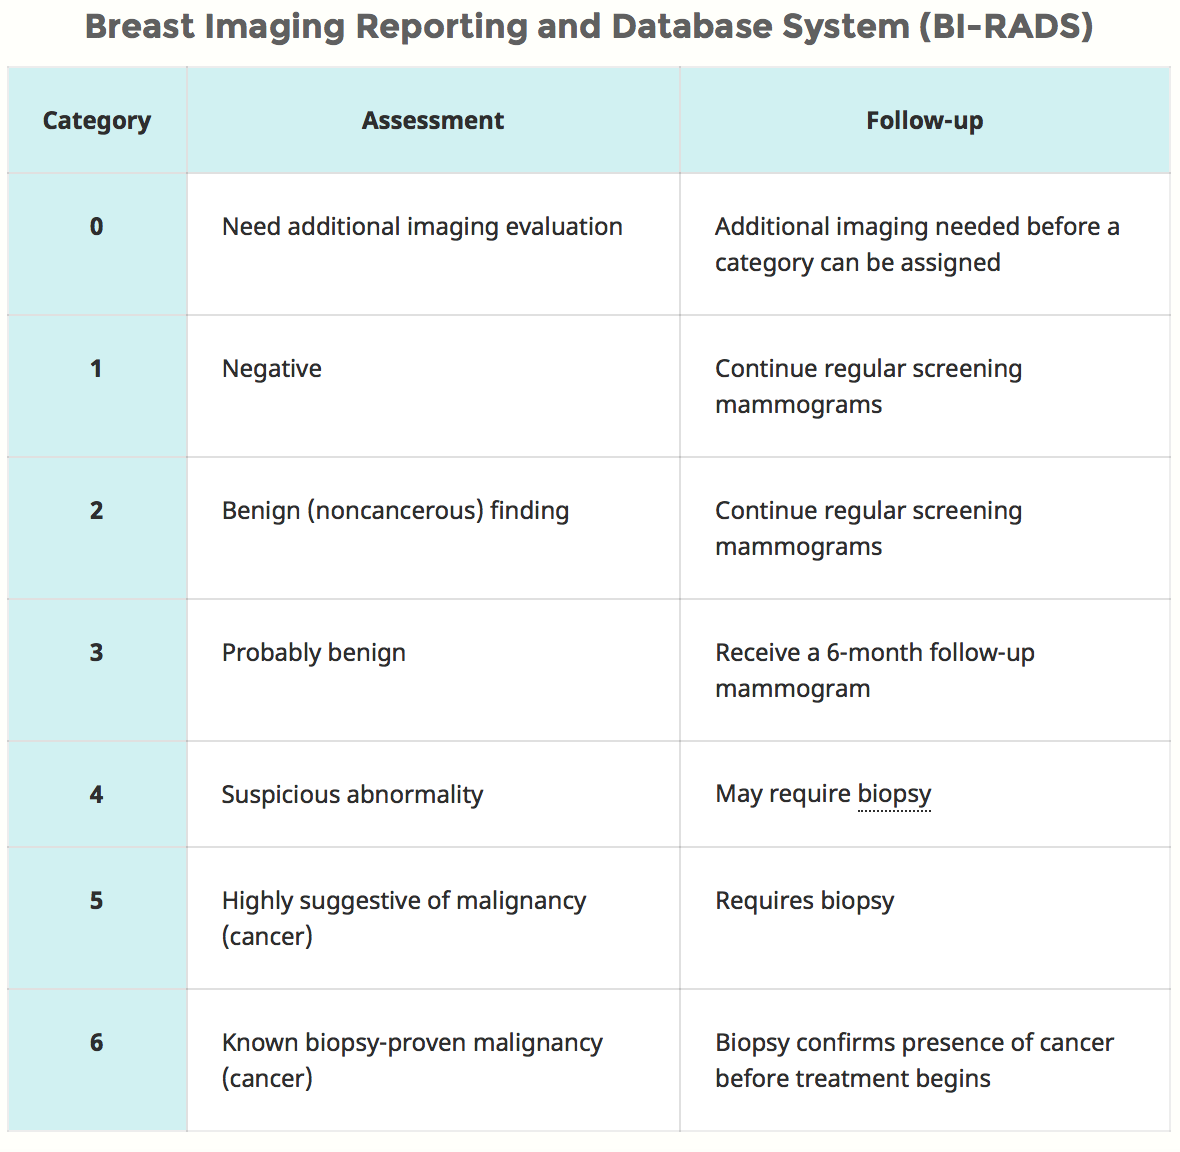 BI-RADS 3 Breast Lesions Have Low Cancer Rate: Research